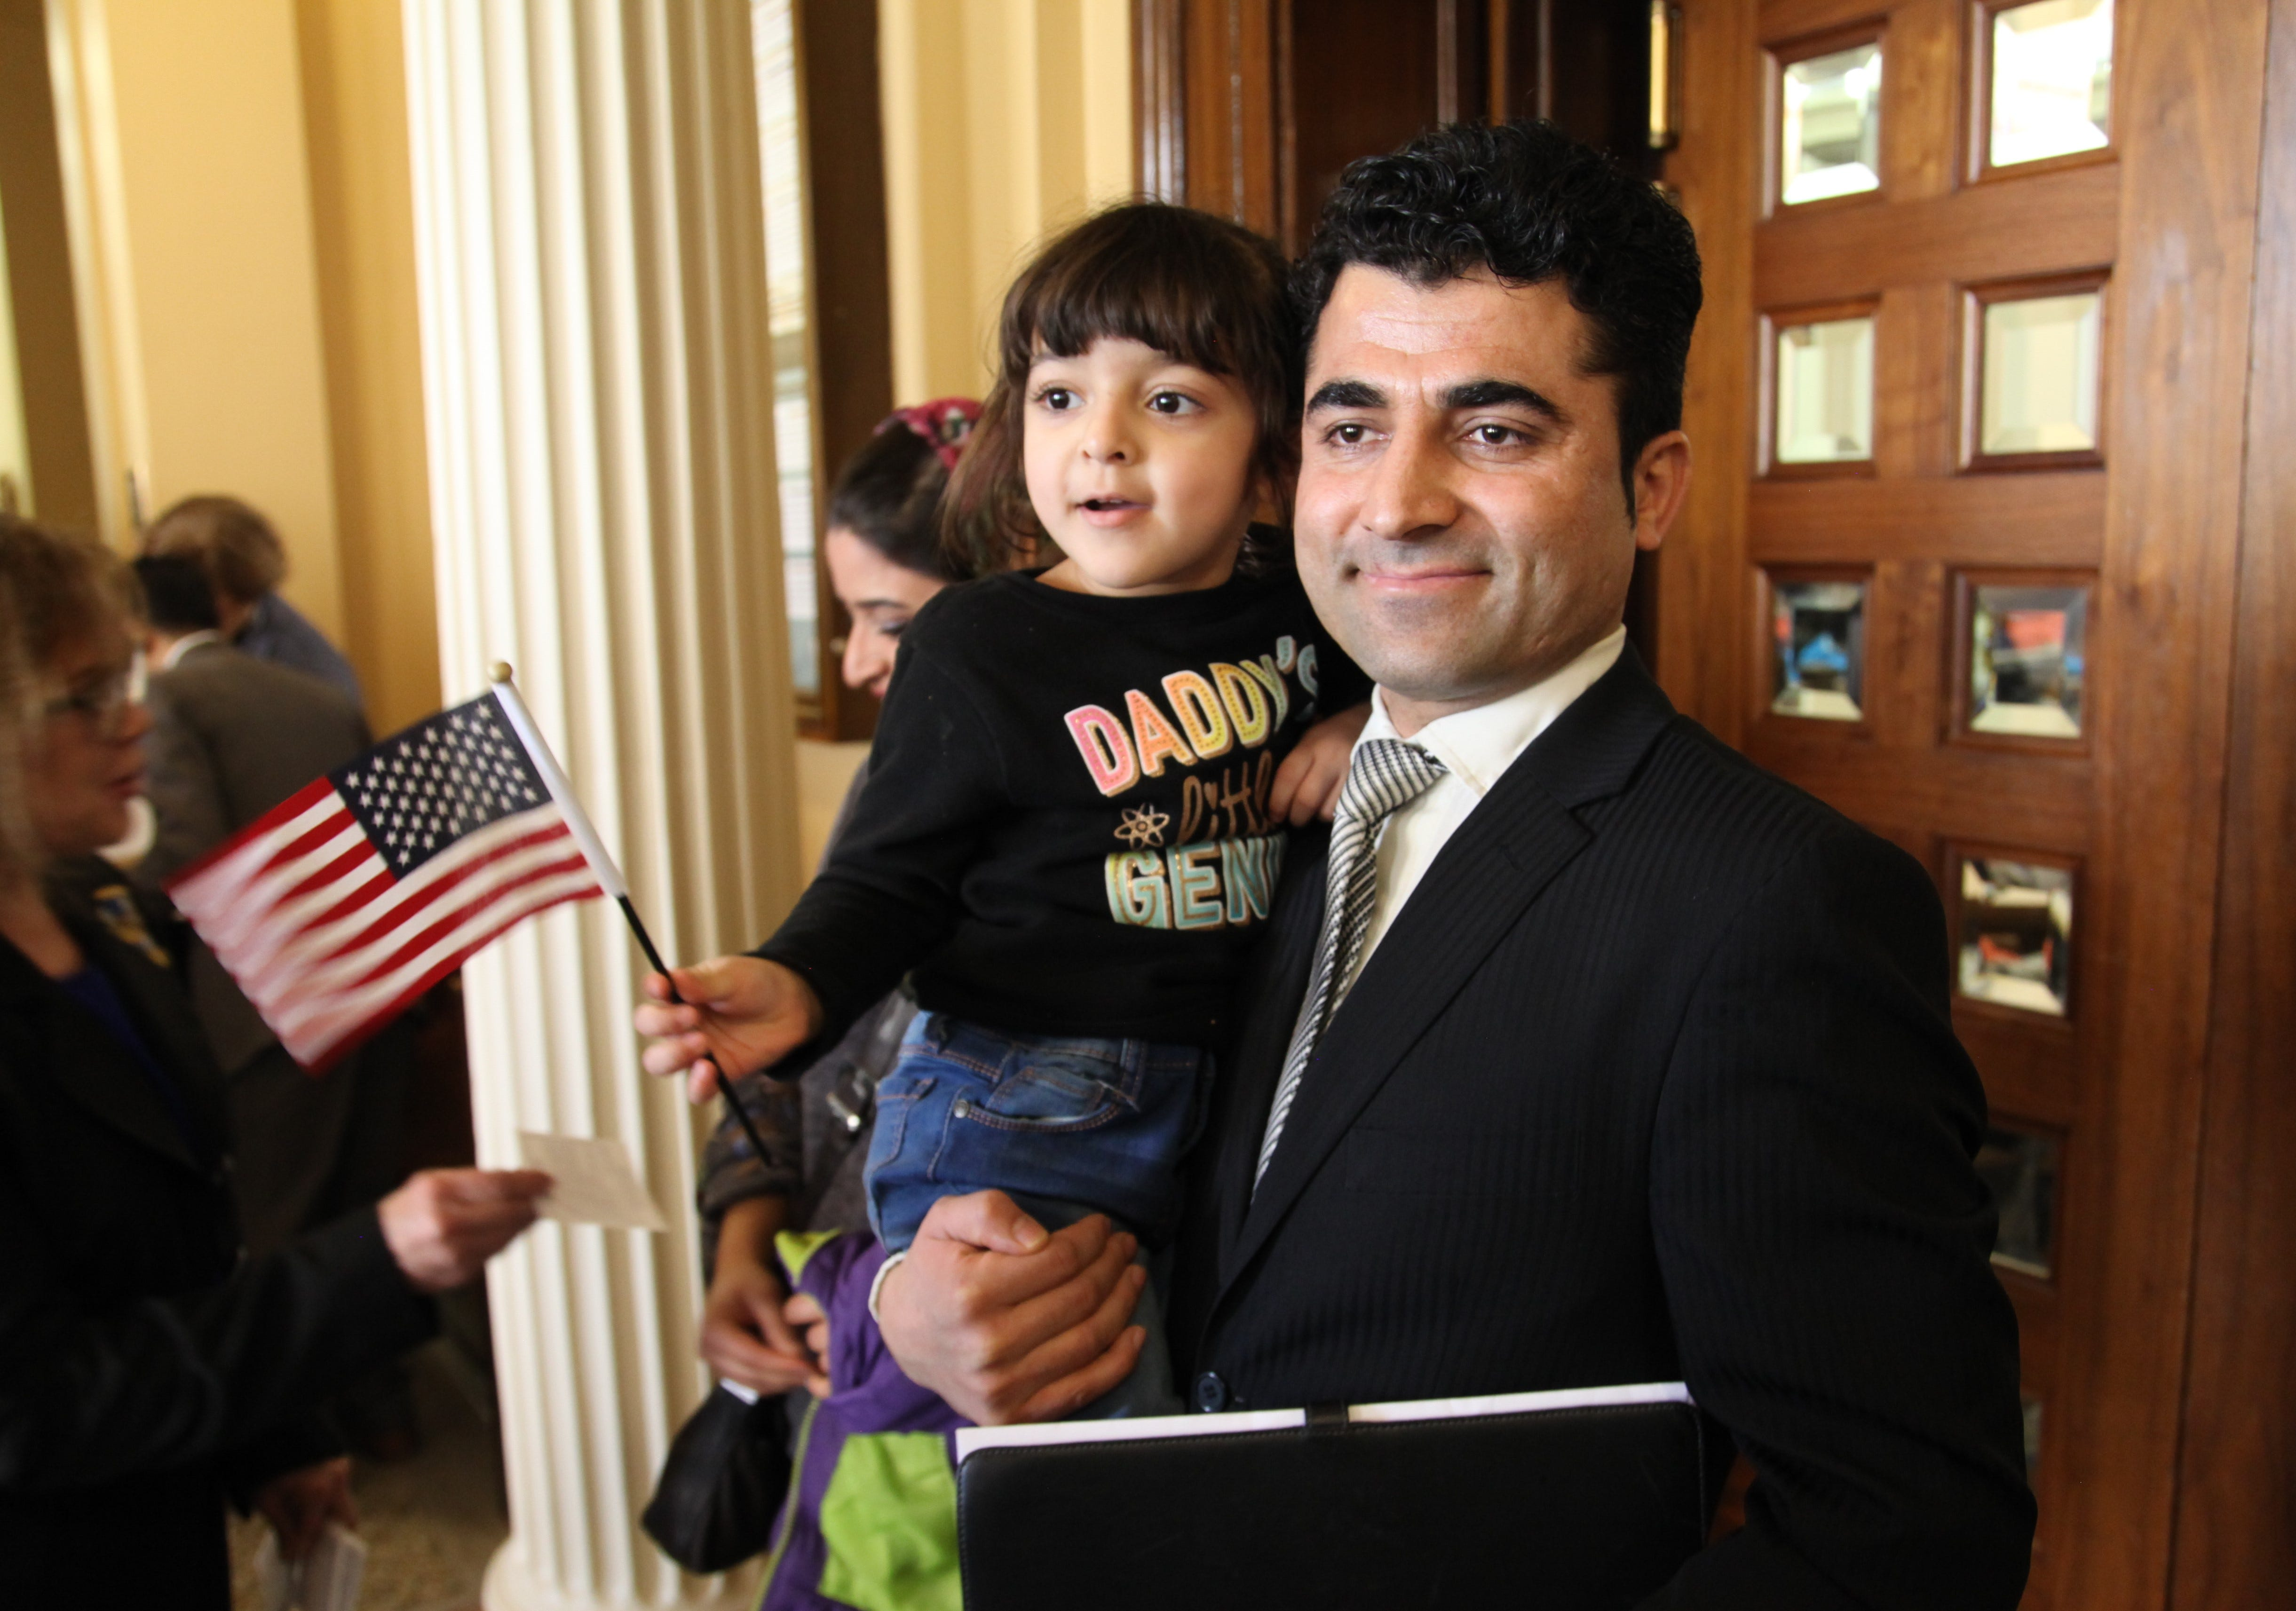 Afghan who risked his life for Iowa soldiers becomes US citizen